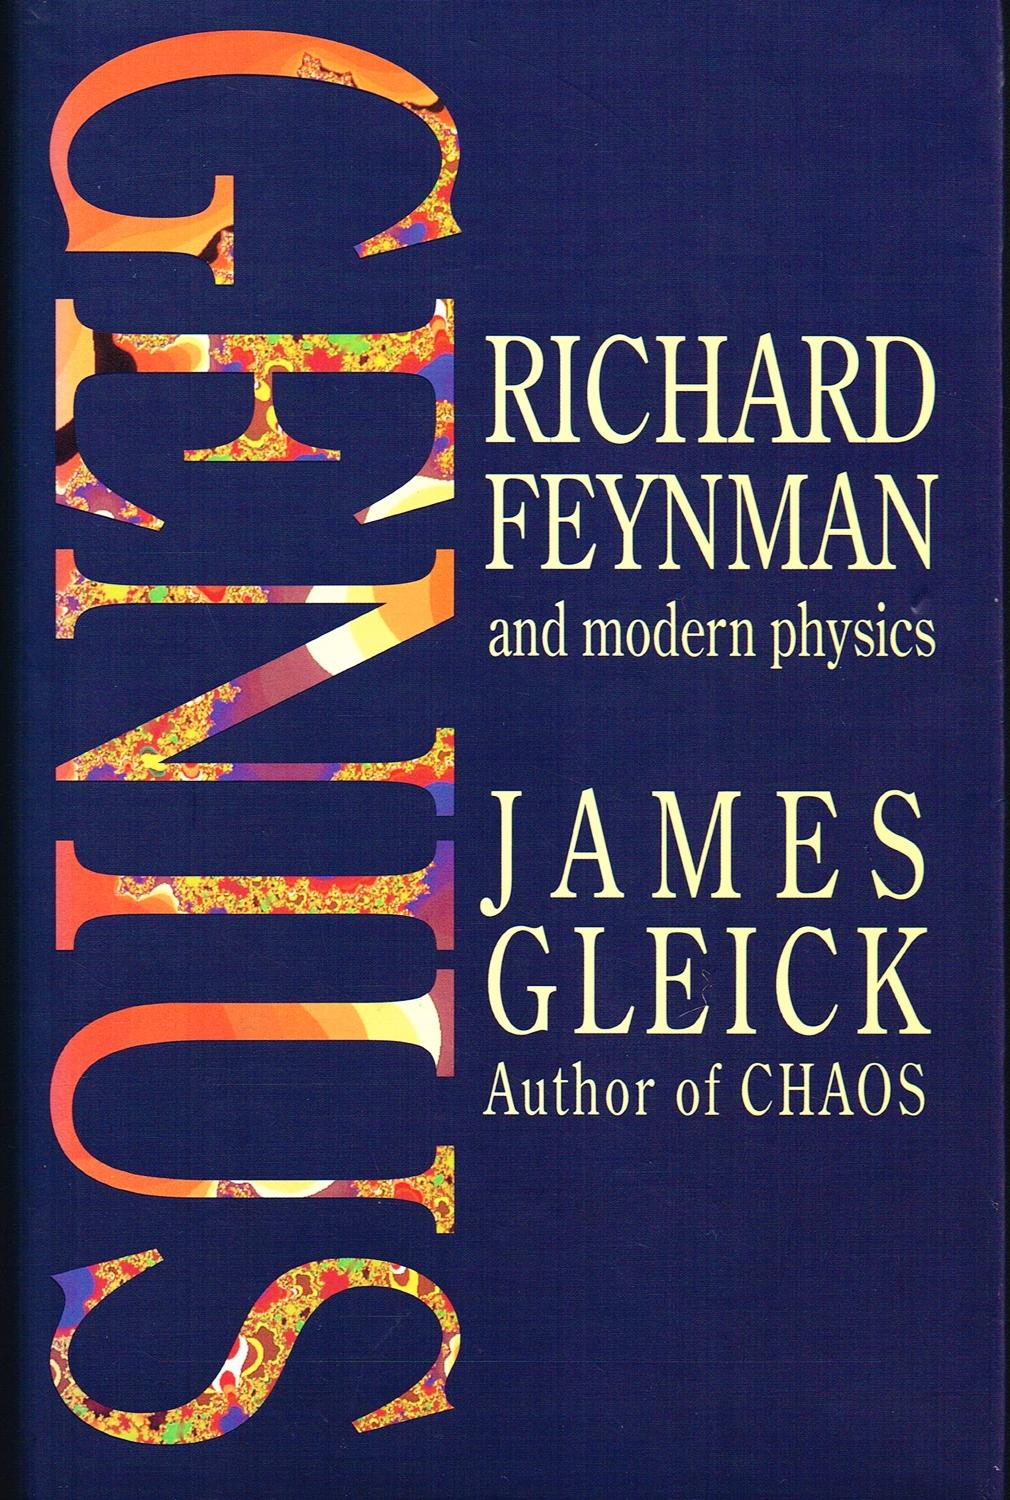 a review of chaos making a new science a debut non fiction book of james gleick Chaos: making a new science - wikipedia chaos: making a new science is a debut non-fiction book by james gleick that initially bible vs science: shocking.